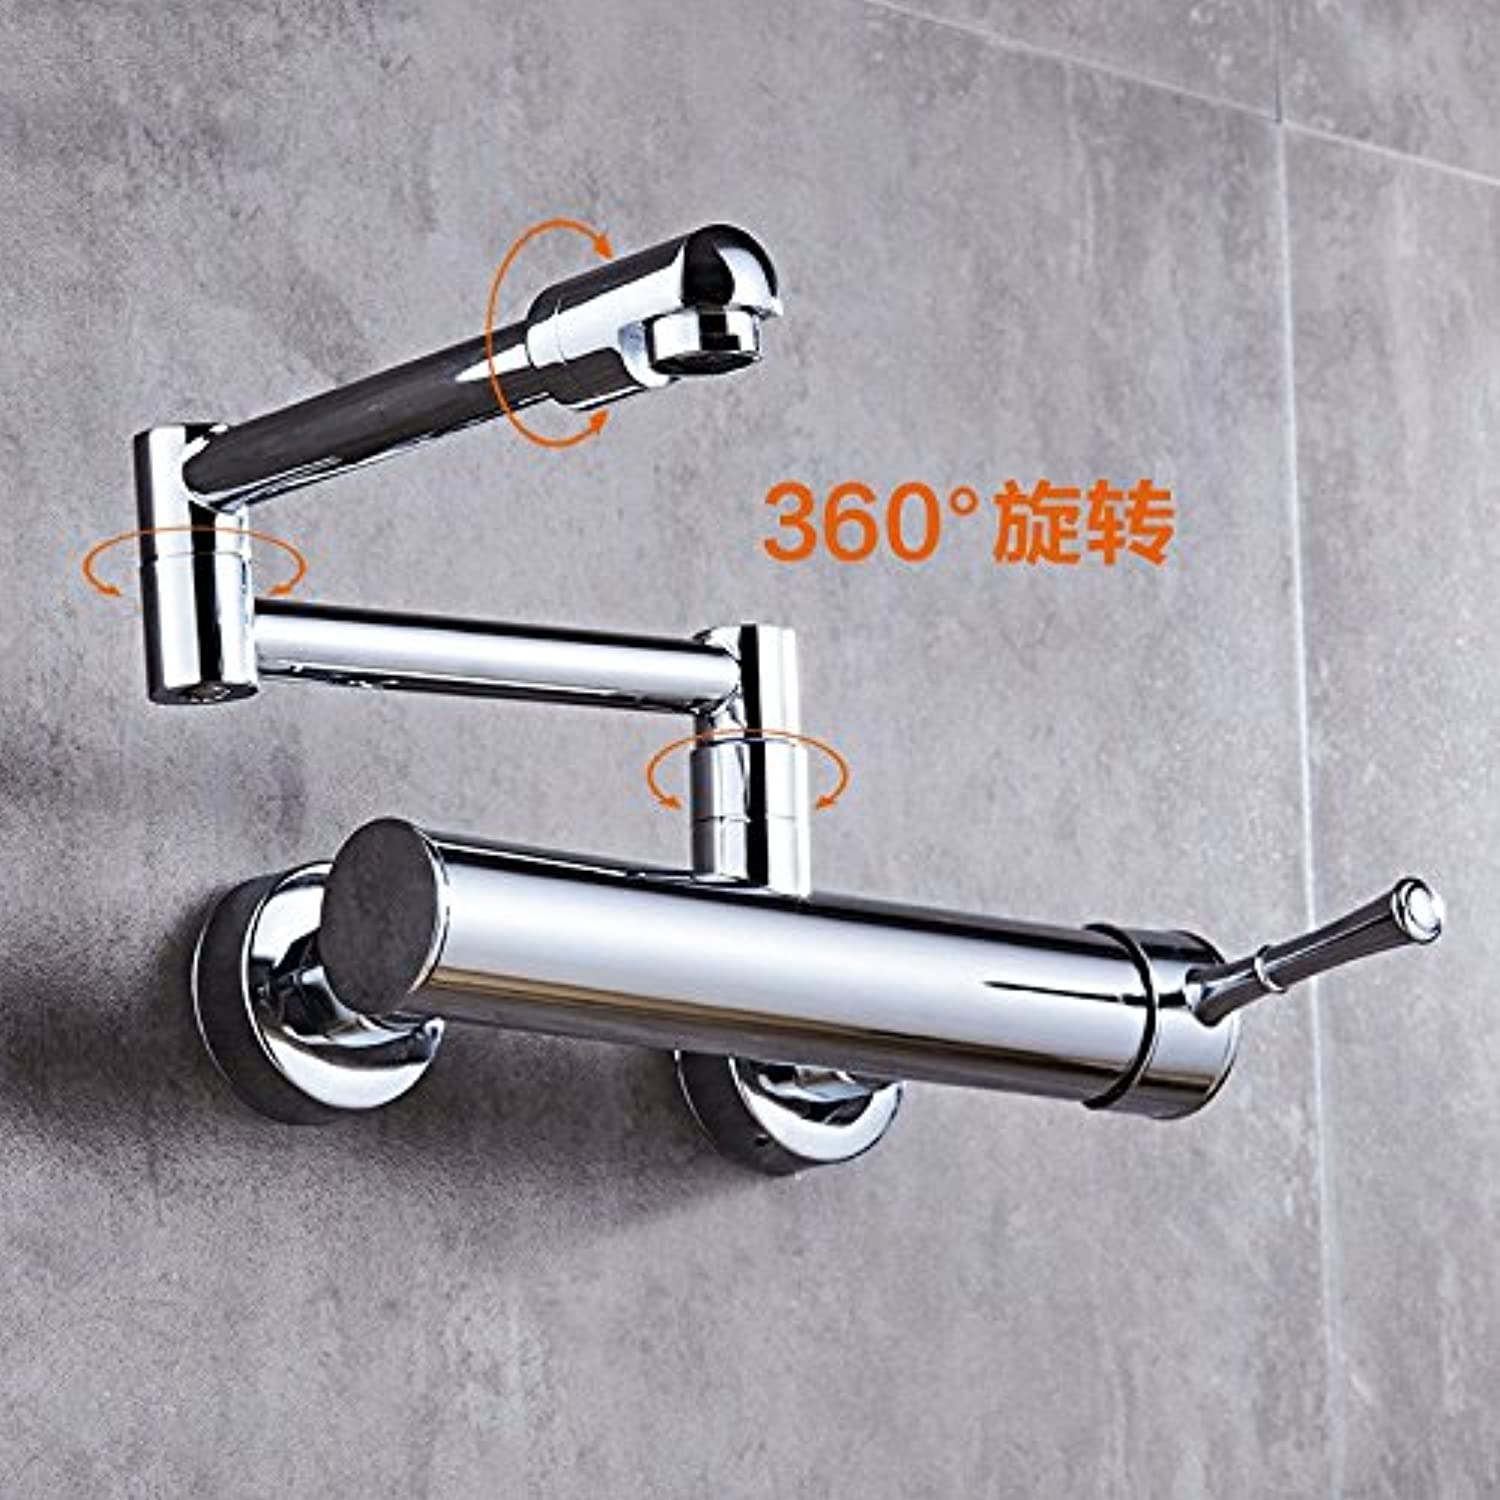 Hlluya Professional Sink Mixer Tap Kitchen Faucet redate the stretch fold dish washing basin orientation and cold water taps into the wall